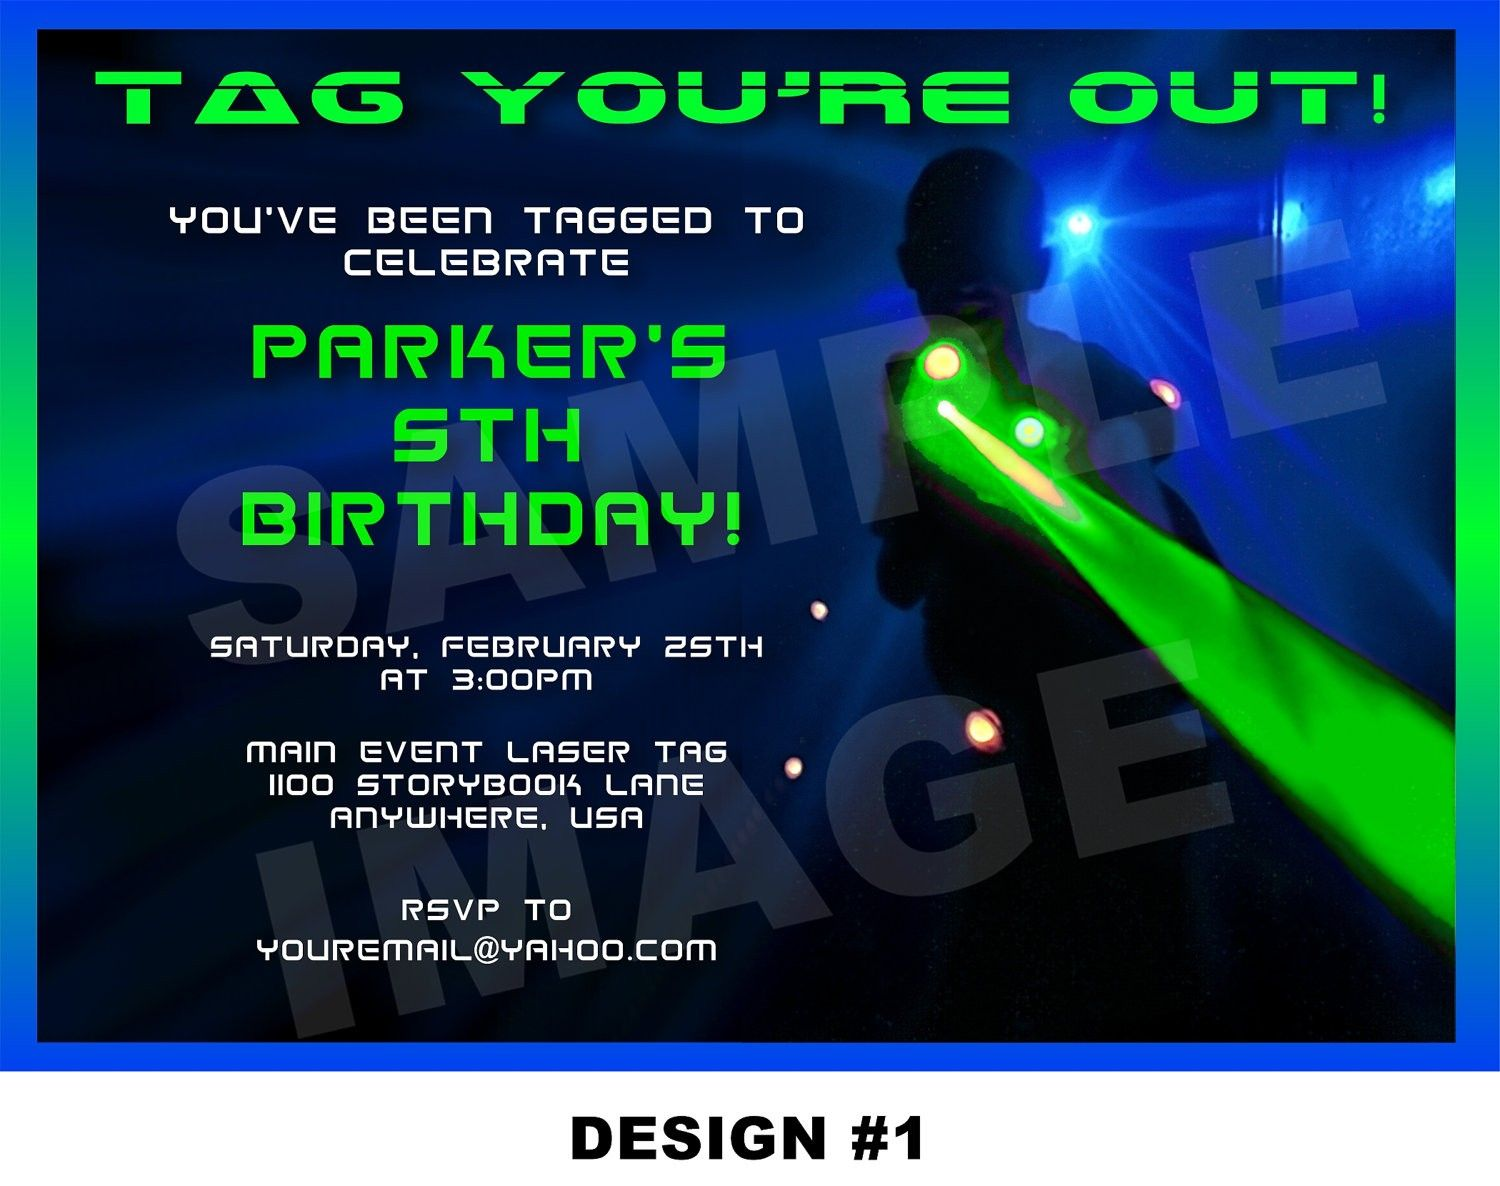 graphic regarding Laser Tag Birthday Invitations Free Printable known as Laser Tag Get together Invites Template No cost Nicks birthday